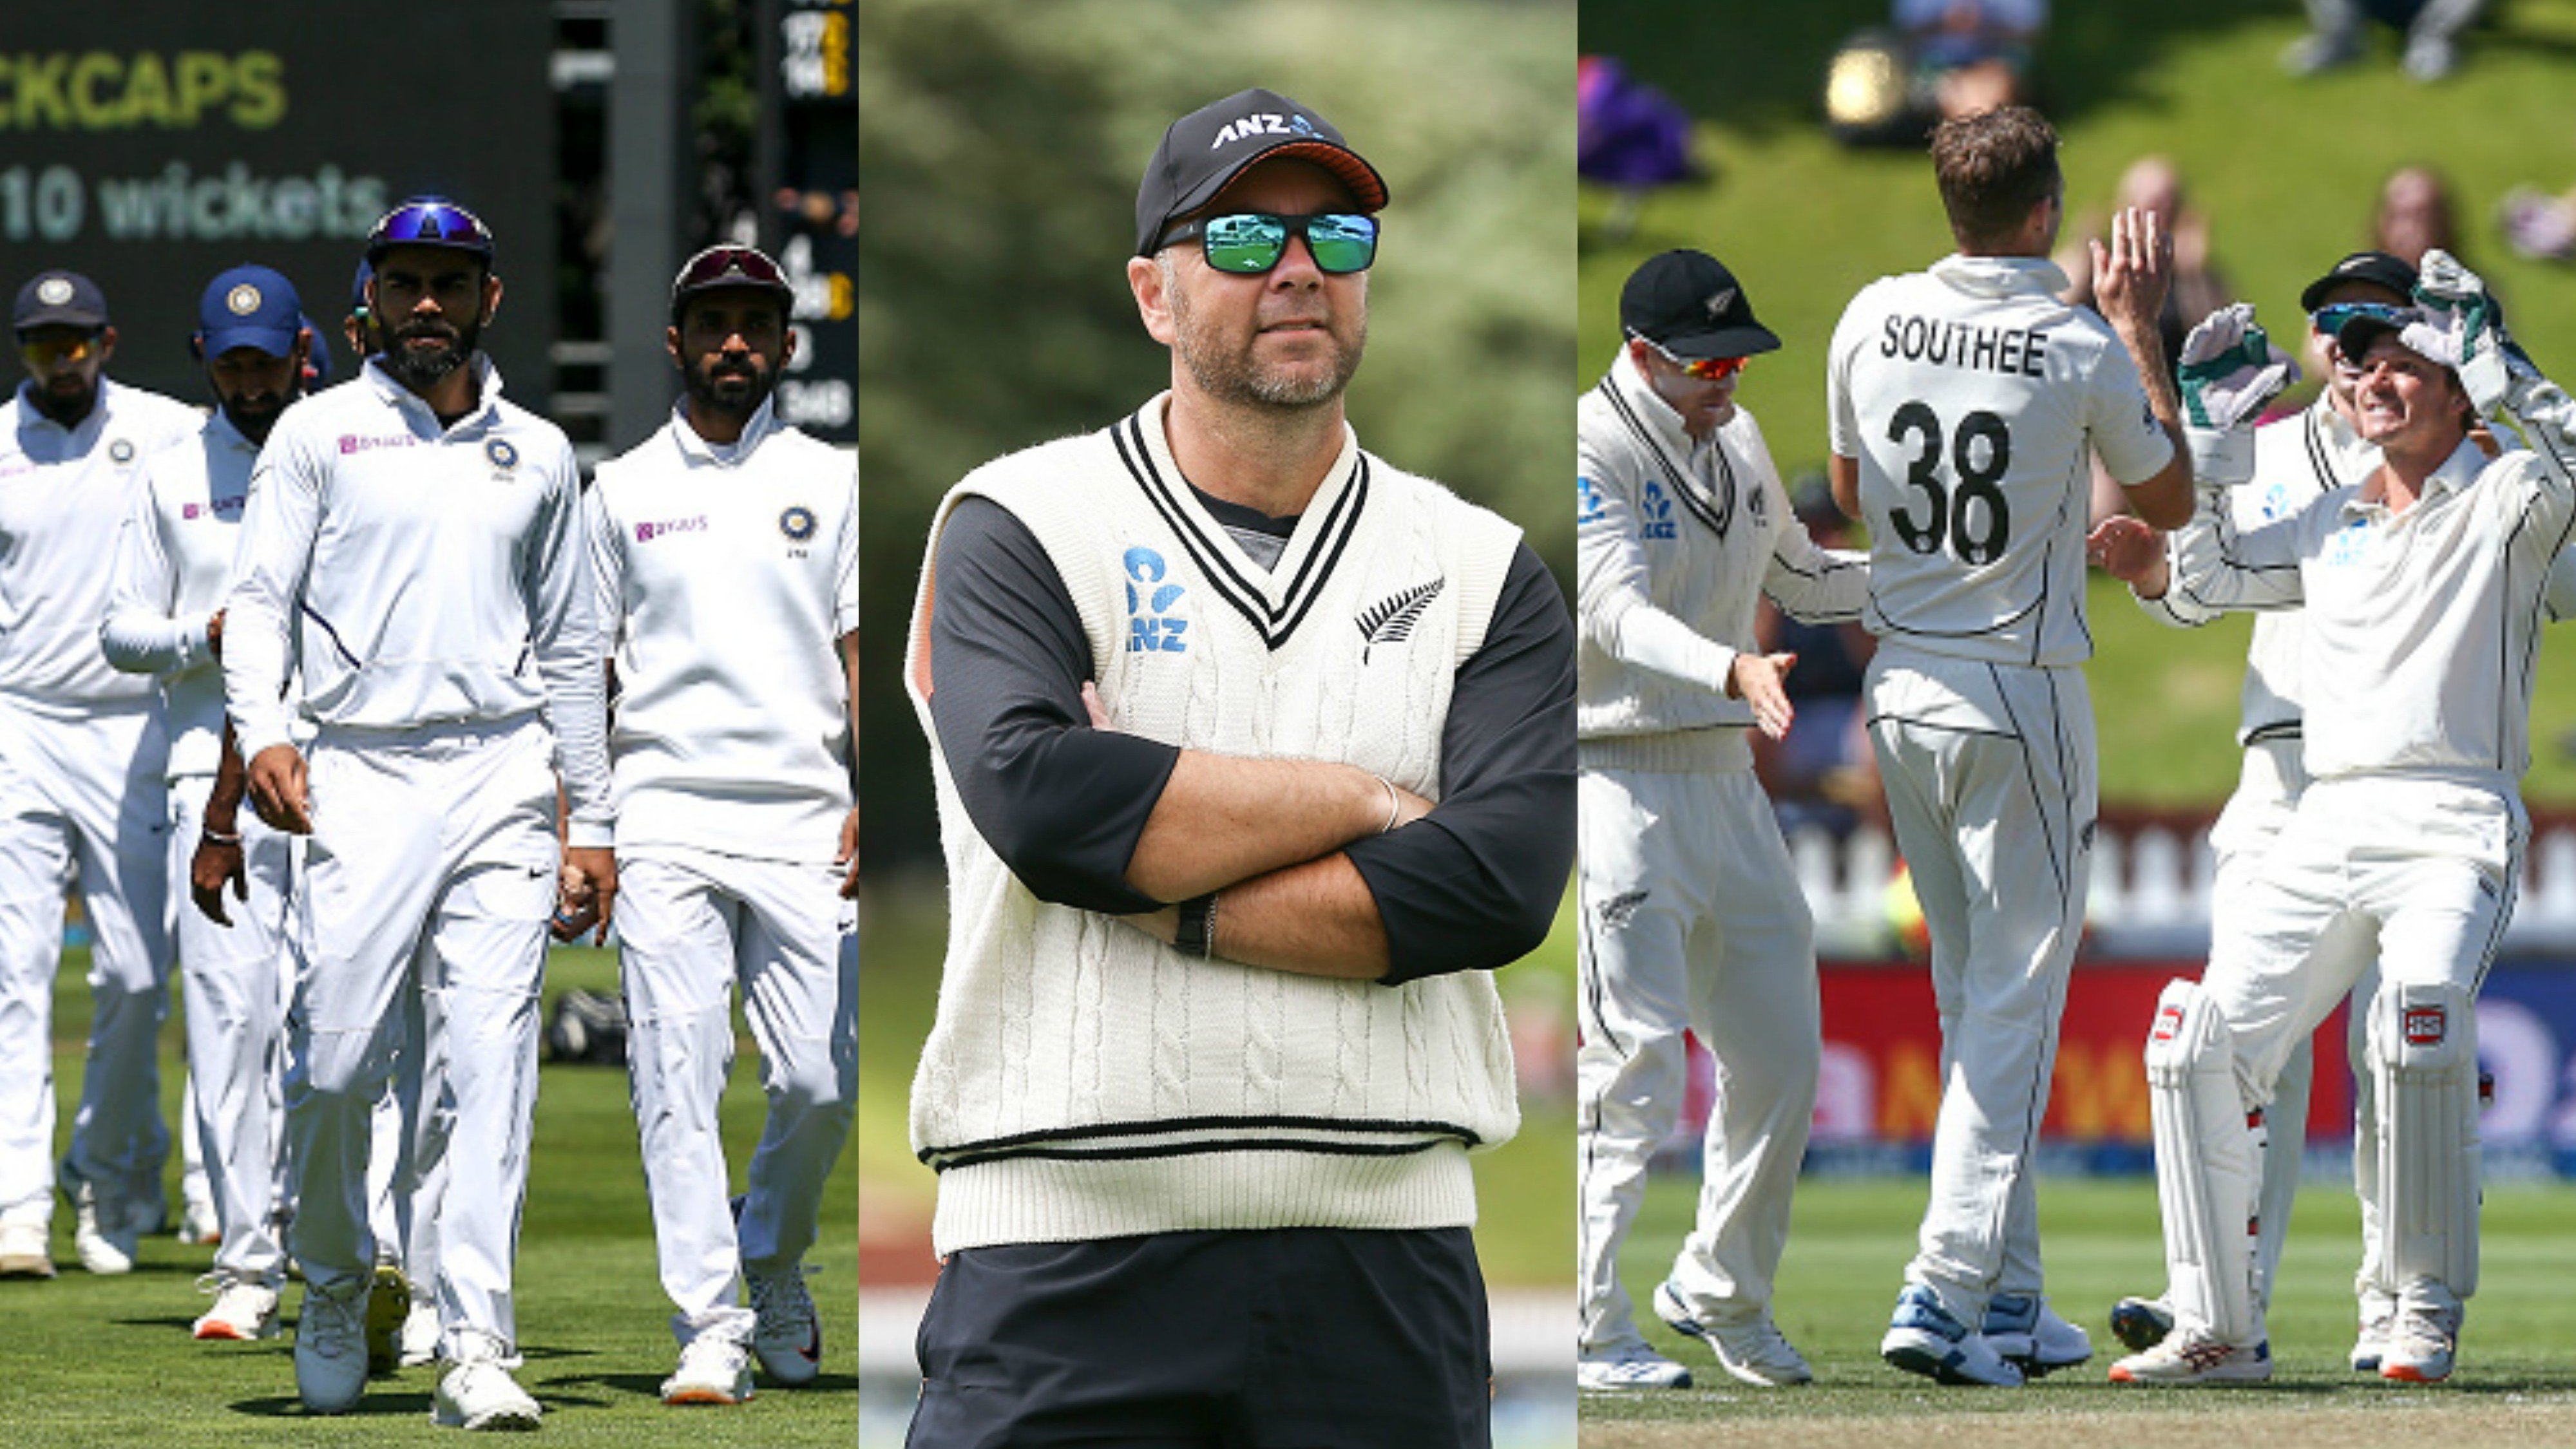 NZ v IND 2020: Indian batsmen 'throwing their hands' at the ball won't work, says  Craig McMillan